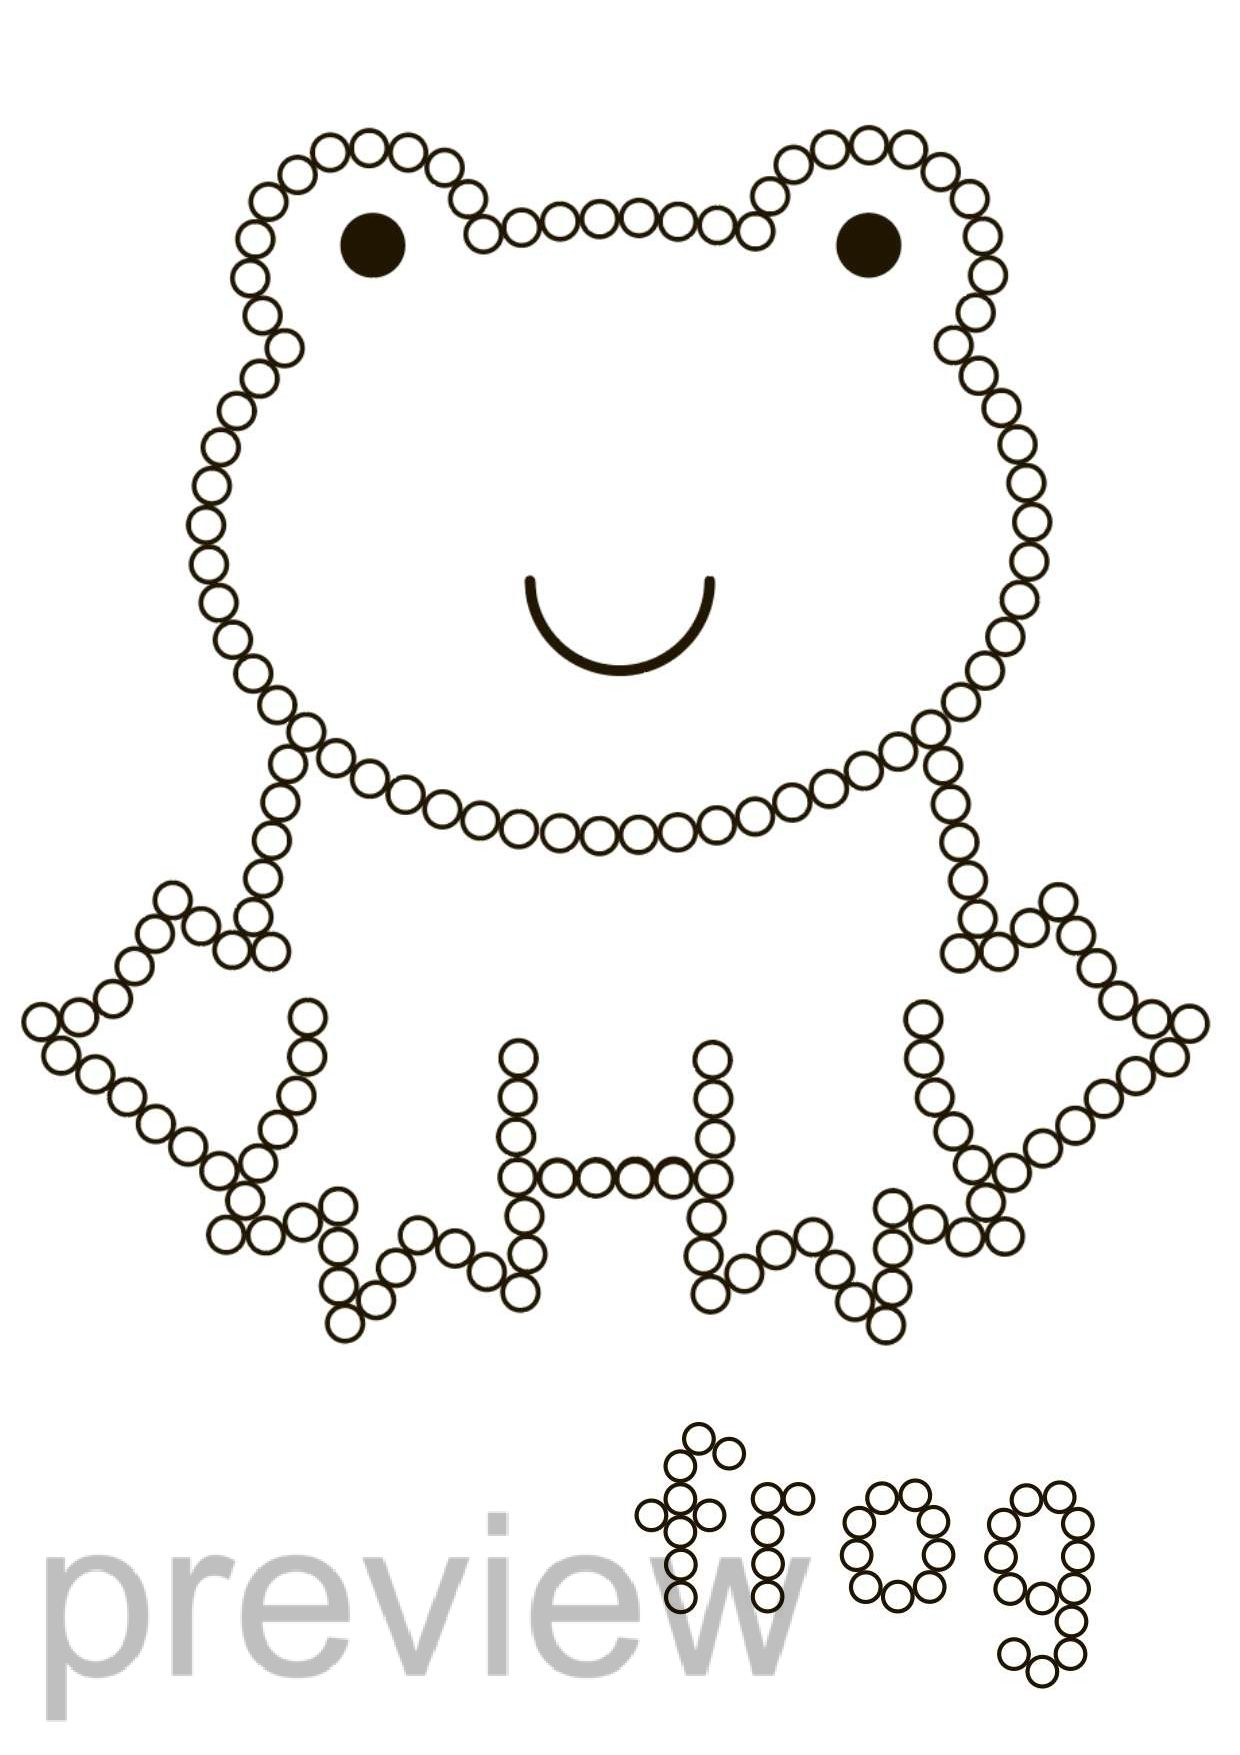 Q Tip Fine Motor Animals Dot Painting Worksheets In